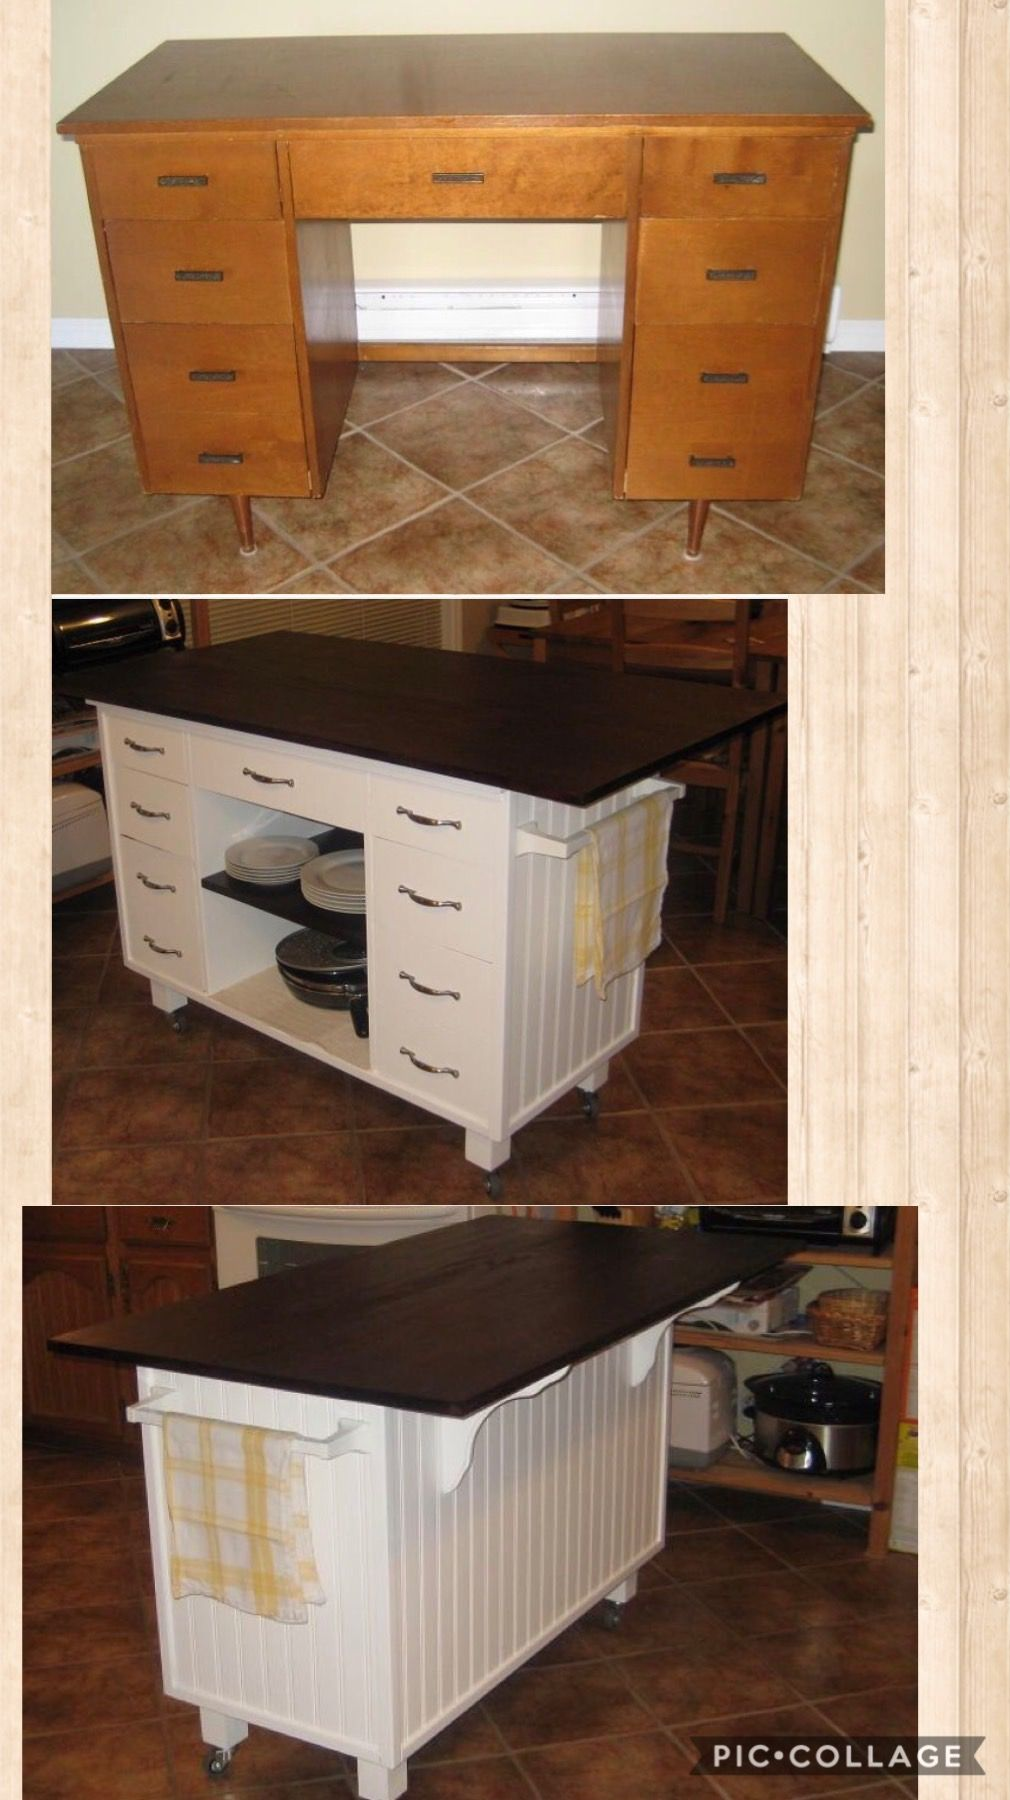 Transformation D Un Bureau De Maitre D Ecole En Ilot De Cuisine Deco Diy Upcycling Meuble Peint Redo Furniture Furniture Makeover Home Diy